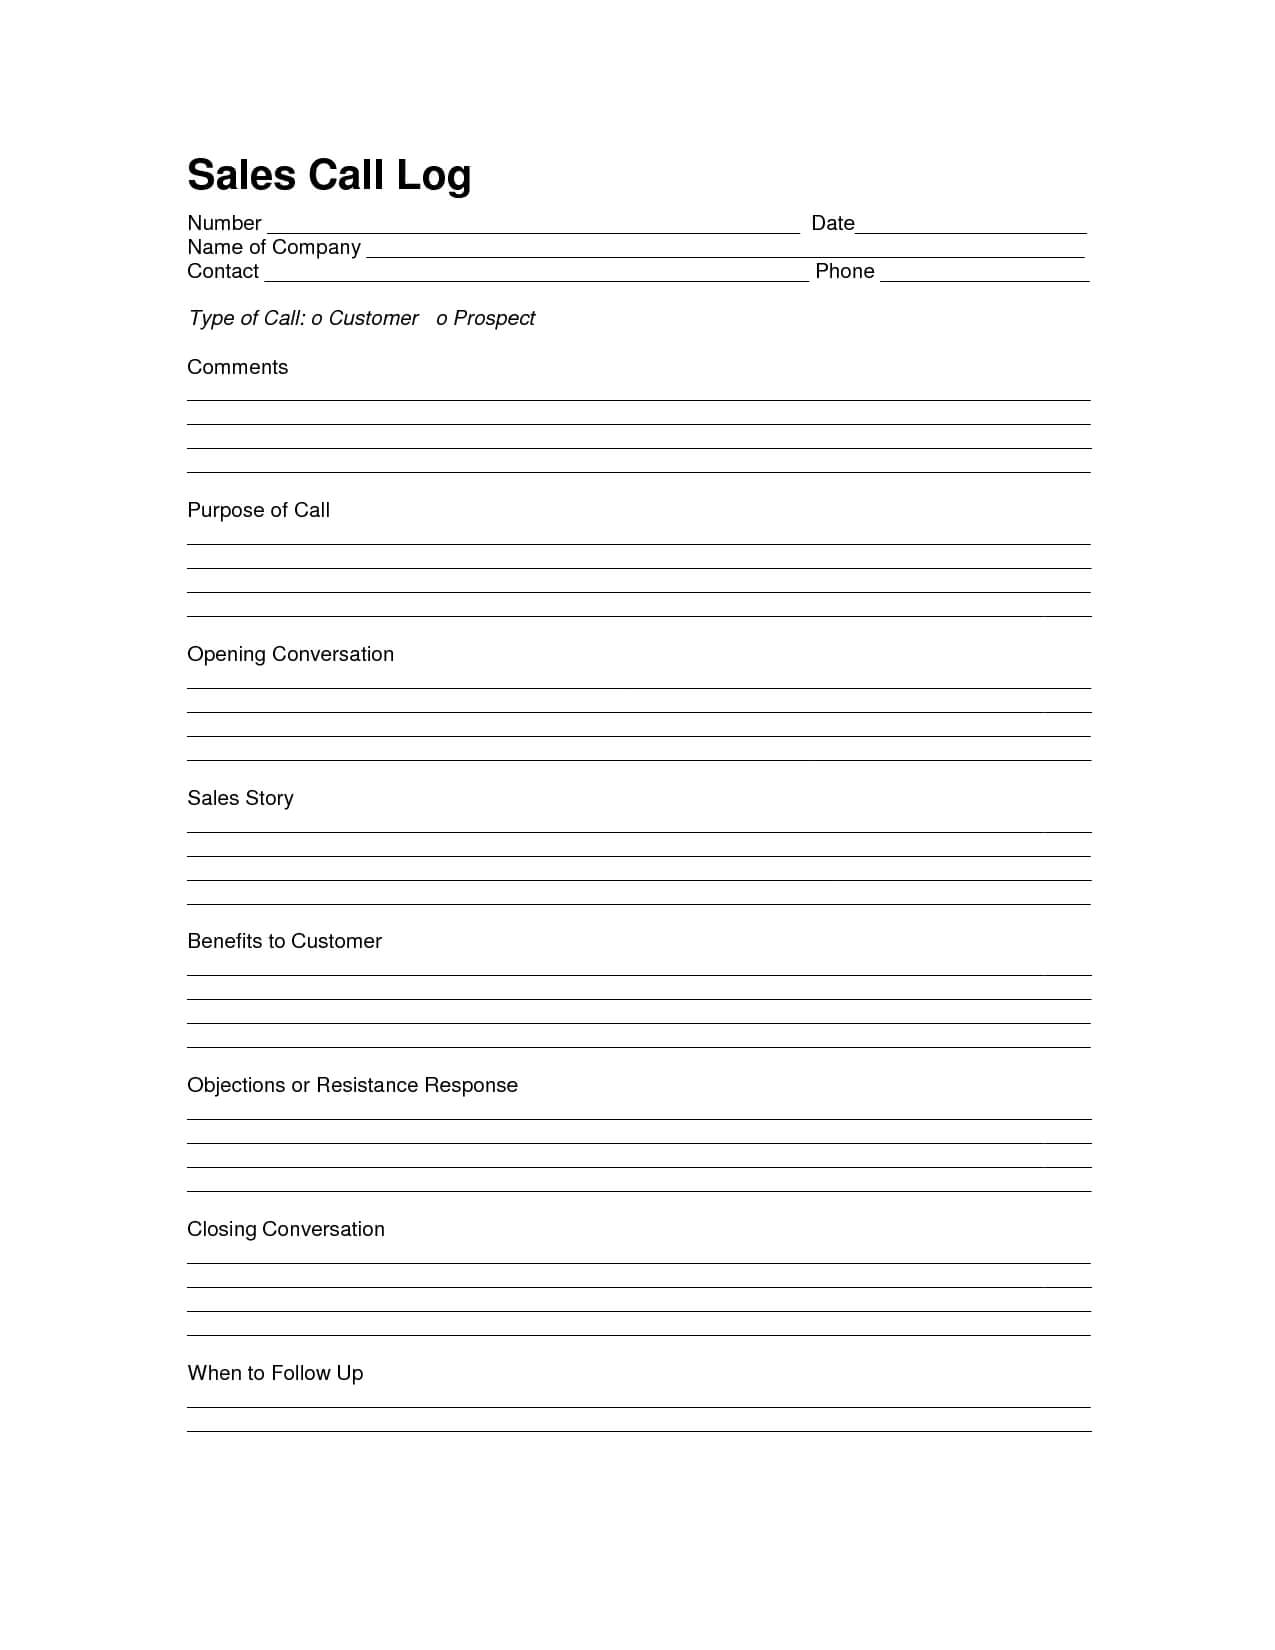 Sales Log Sheet Template | Sales Call Log Template | Call With Regard To Sales Call Reports Templates Free